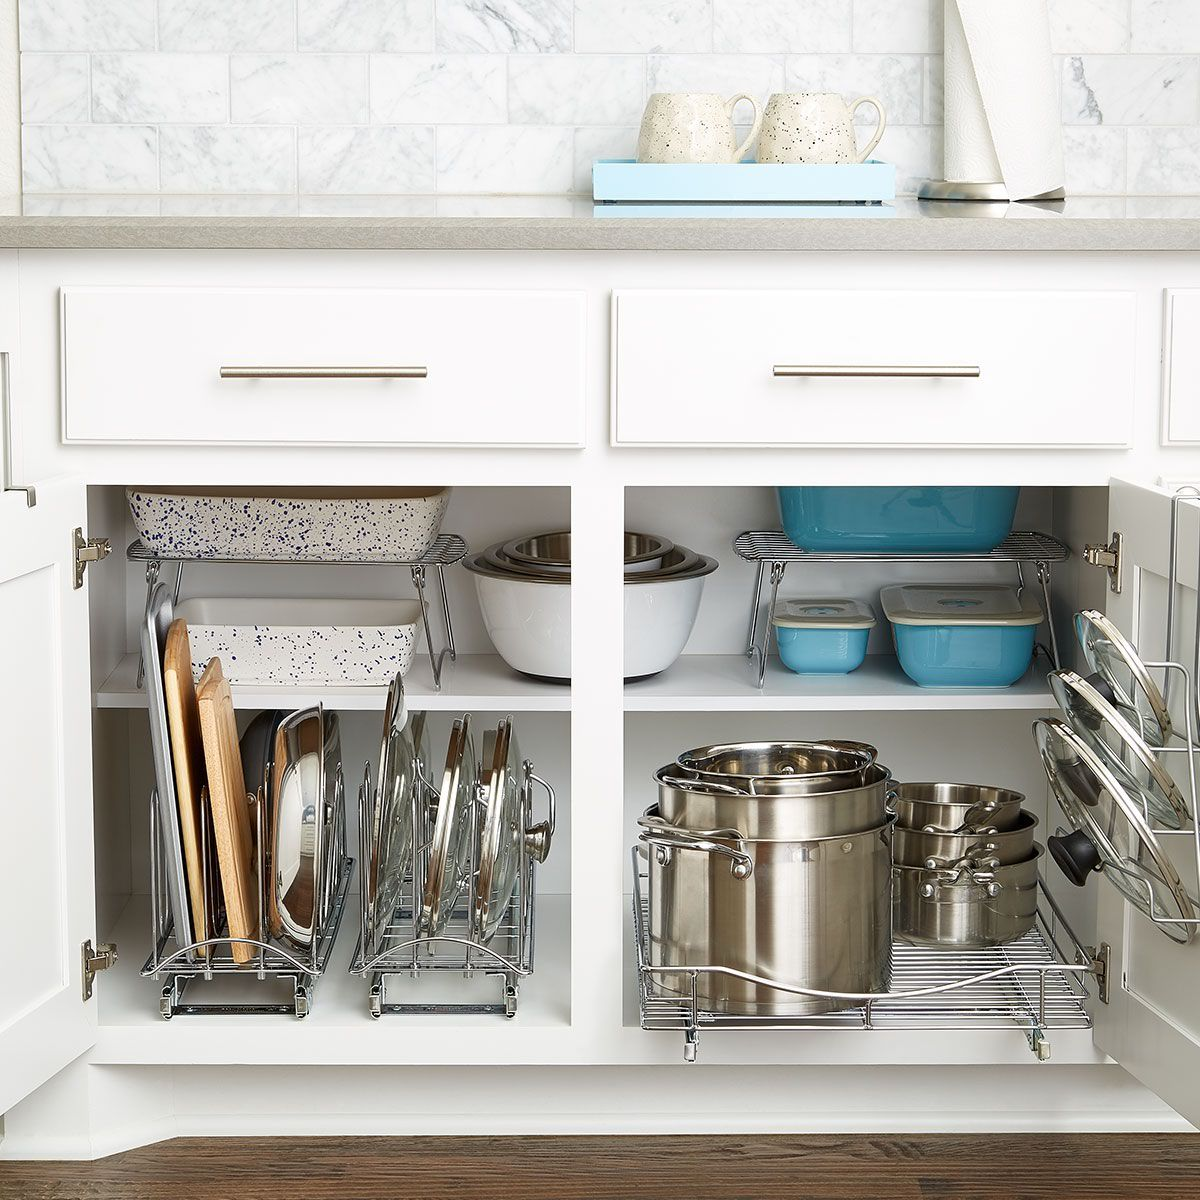 Tips for Choosing and Organizing Kitchen Cabinets